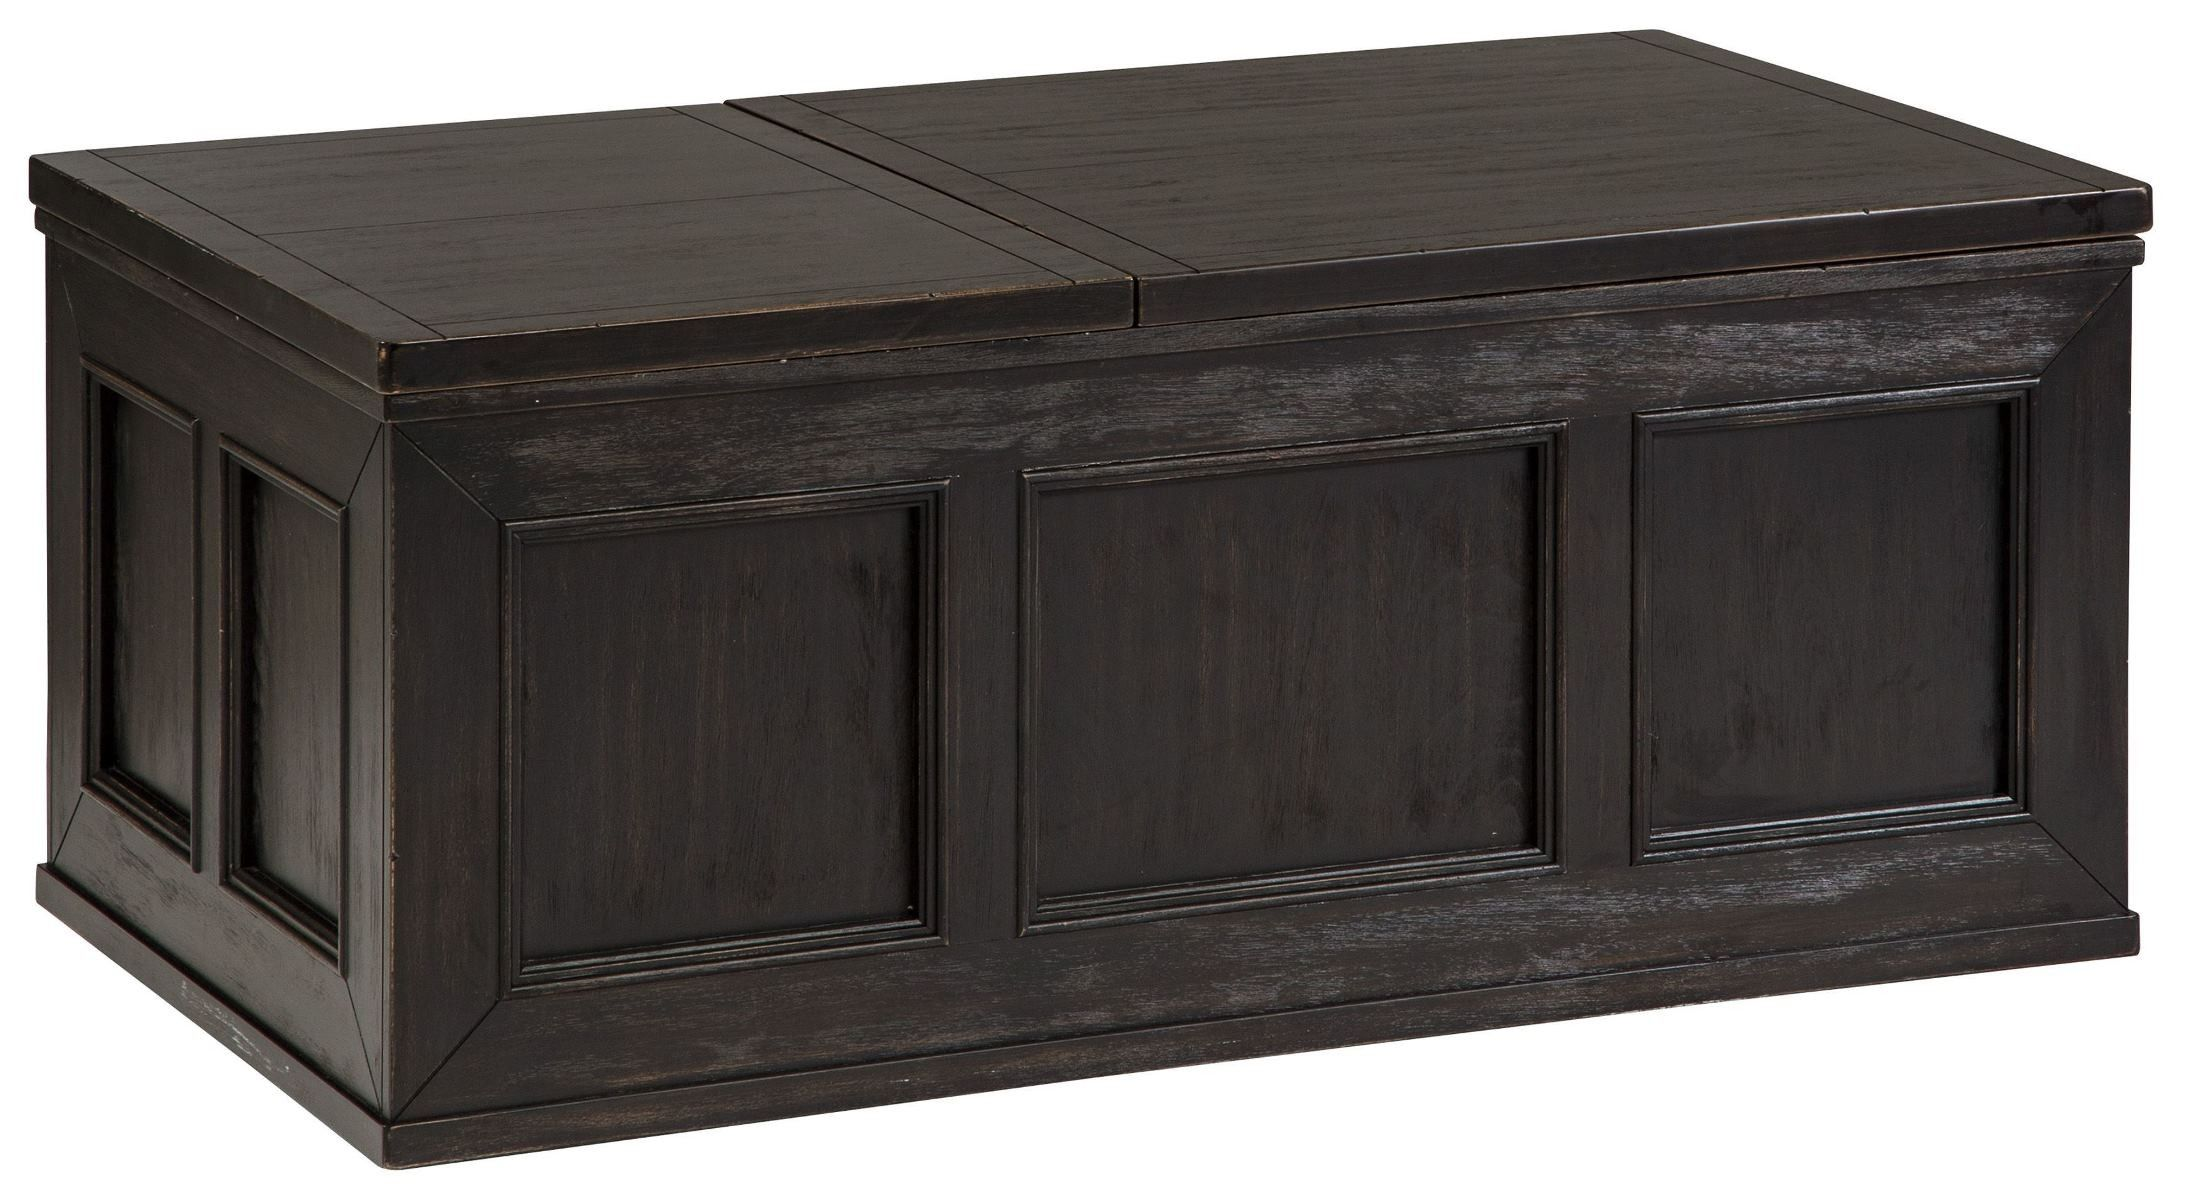 Gavelston Lift Top Cocktail Table Lift Top Coffee Table Signature Design By Ashley Ashley Furniture [ 1199 x 2200 Pixel ]